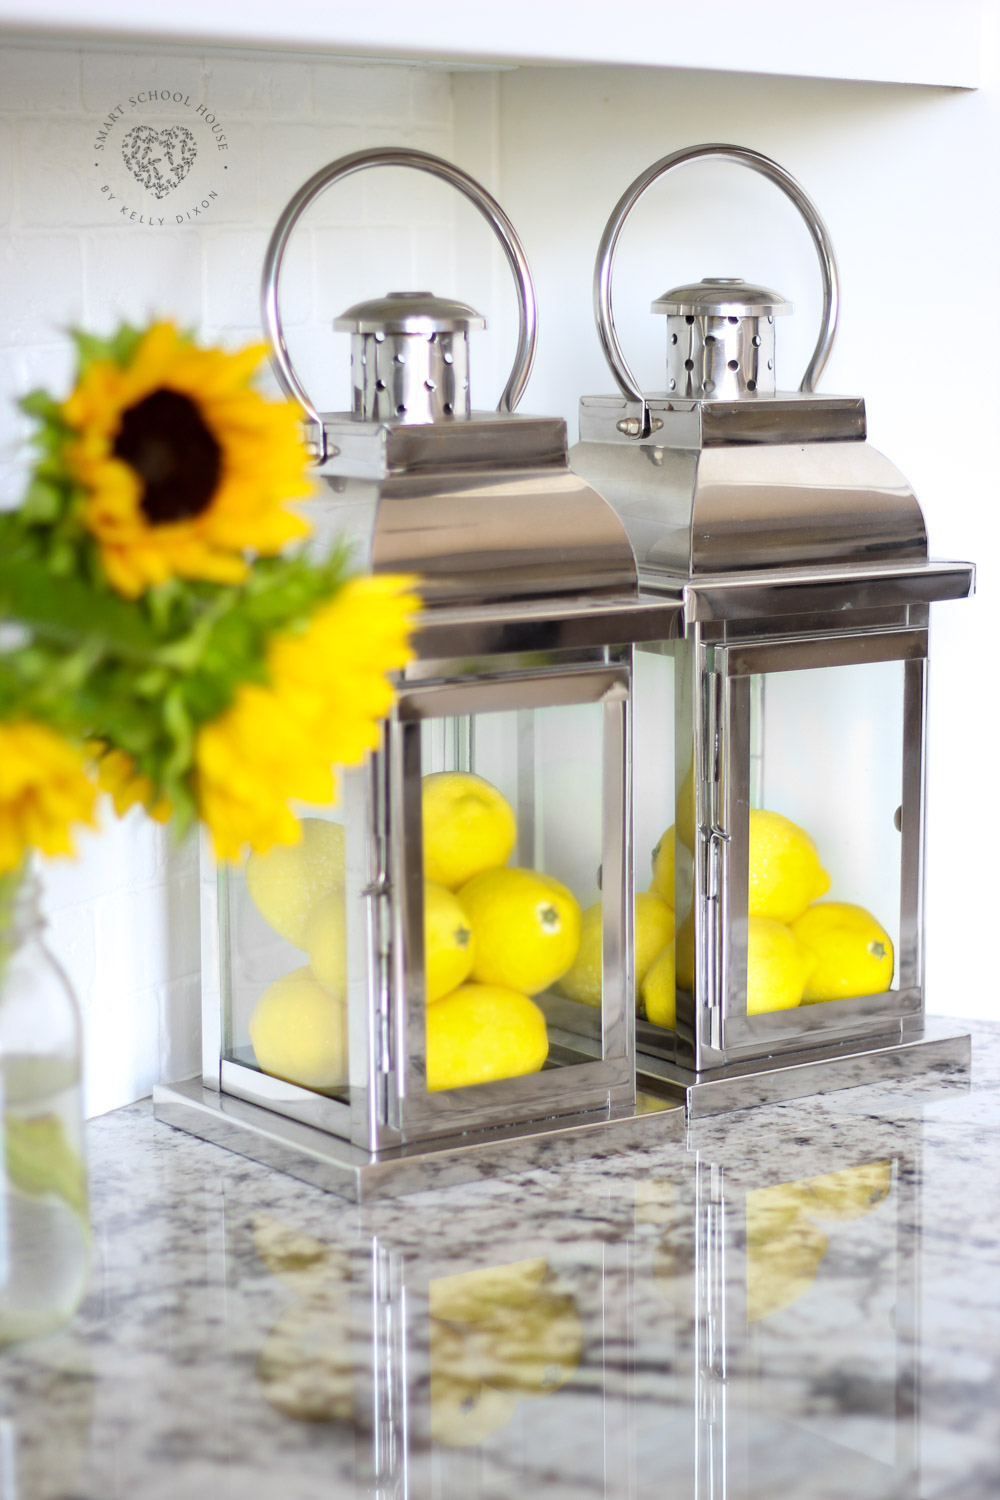 Decorating with lanterns in the kitchen. Lemons, lanterns, and sunflowers. Change the lemons out depending on the season! #DIYhomedecor #farmhousestyle